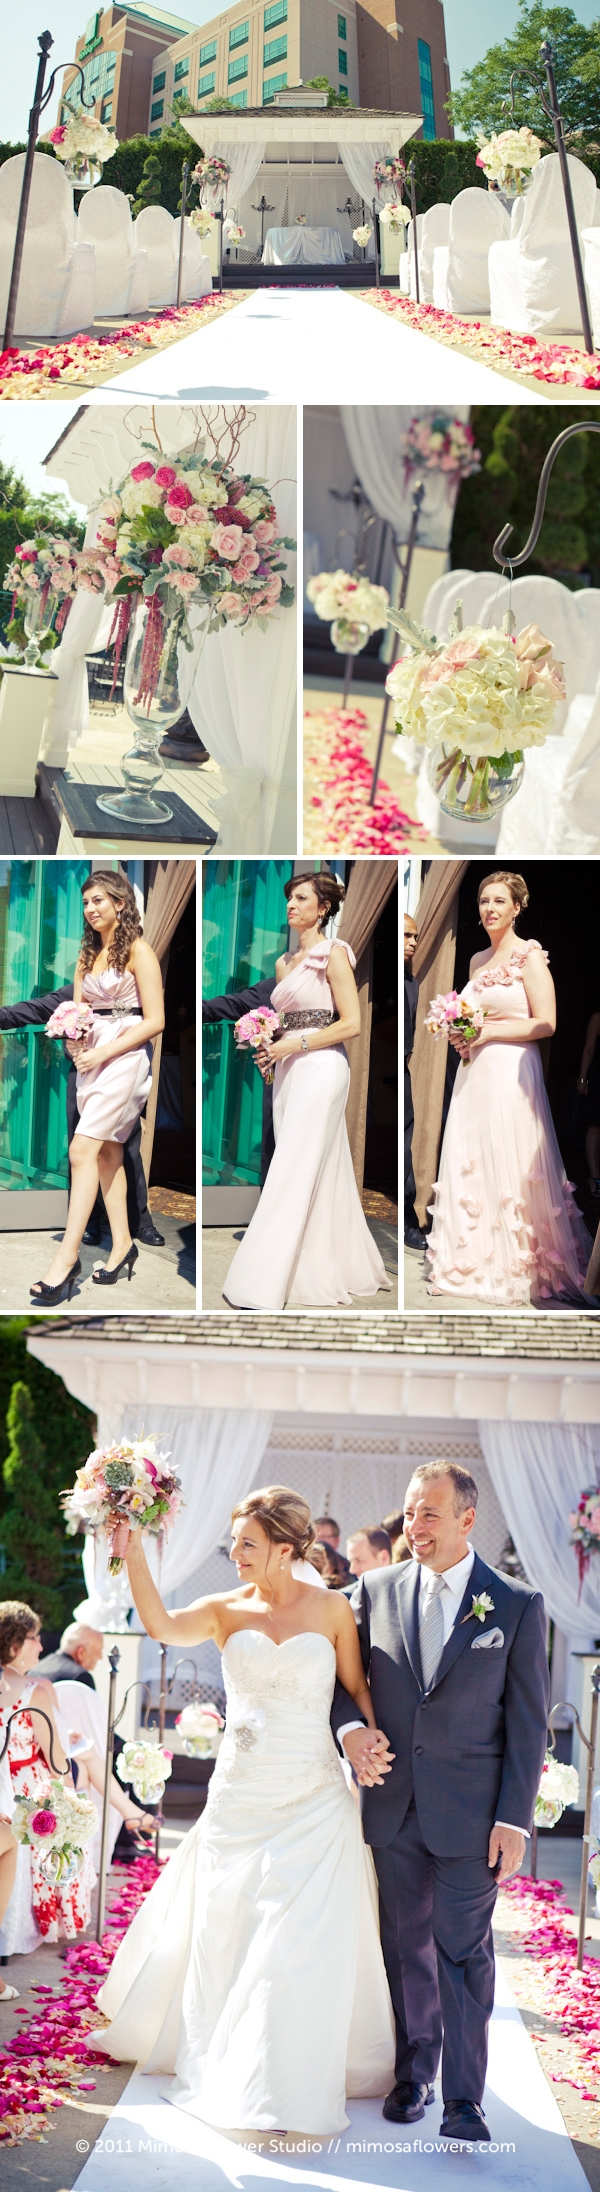 Outdoor Wedding Ceremony Flowers Collage